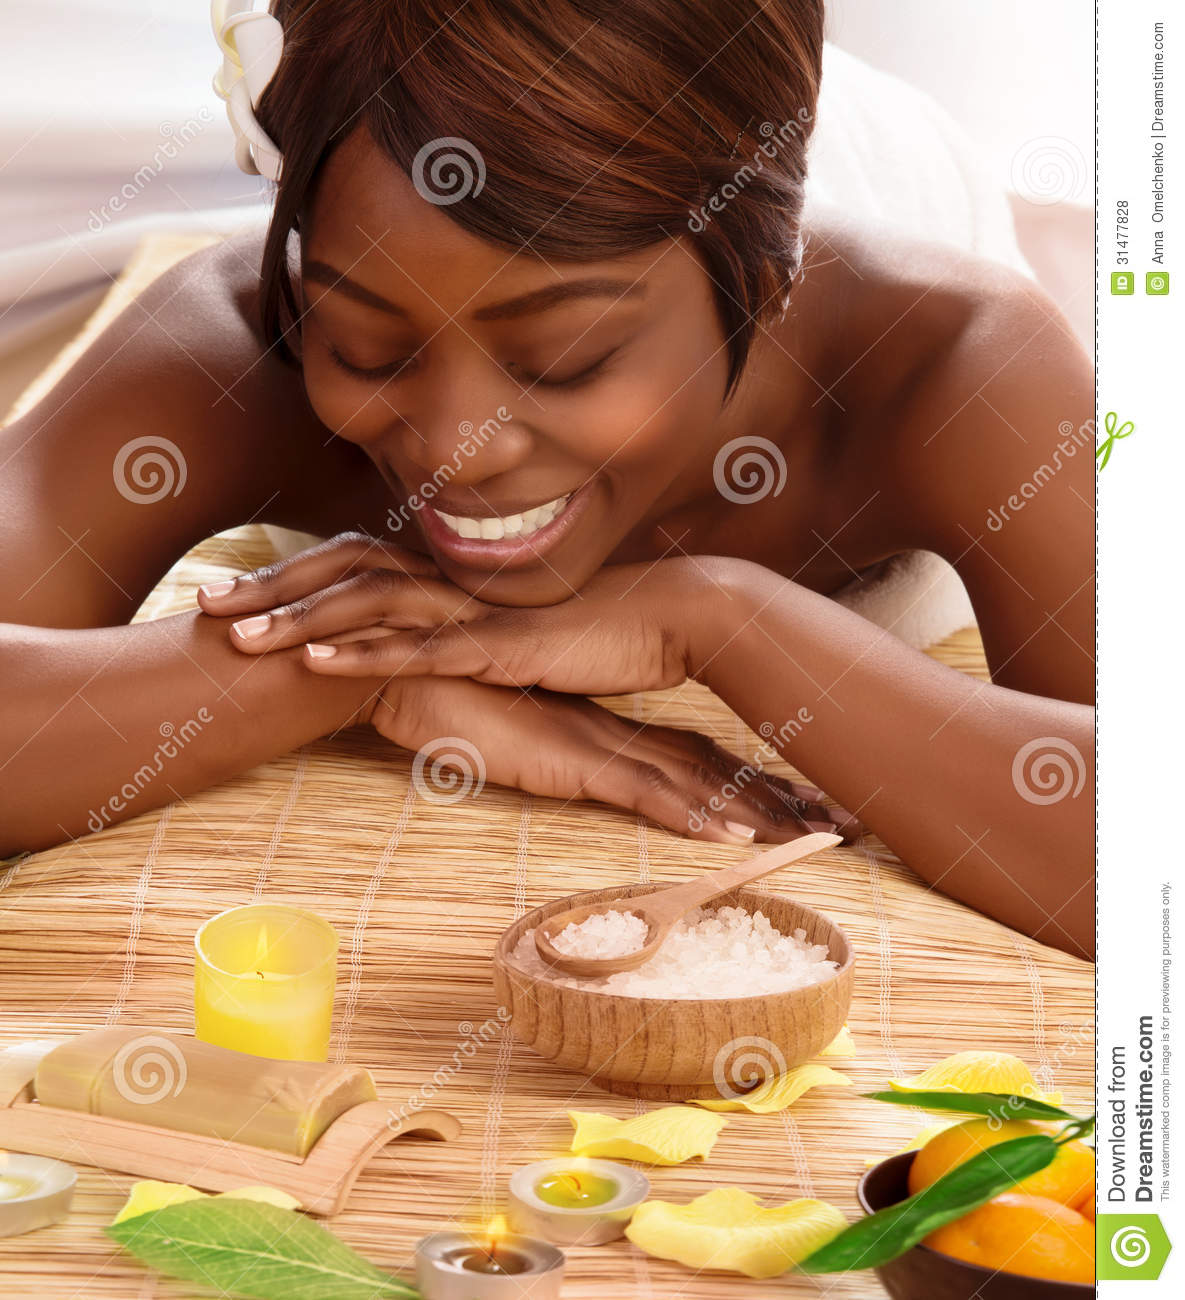 African Woman On Massage Table Royalty Free Stock Photos ...